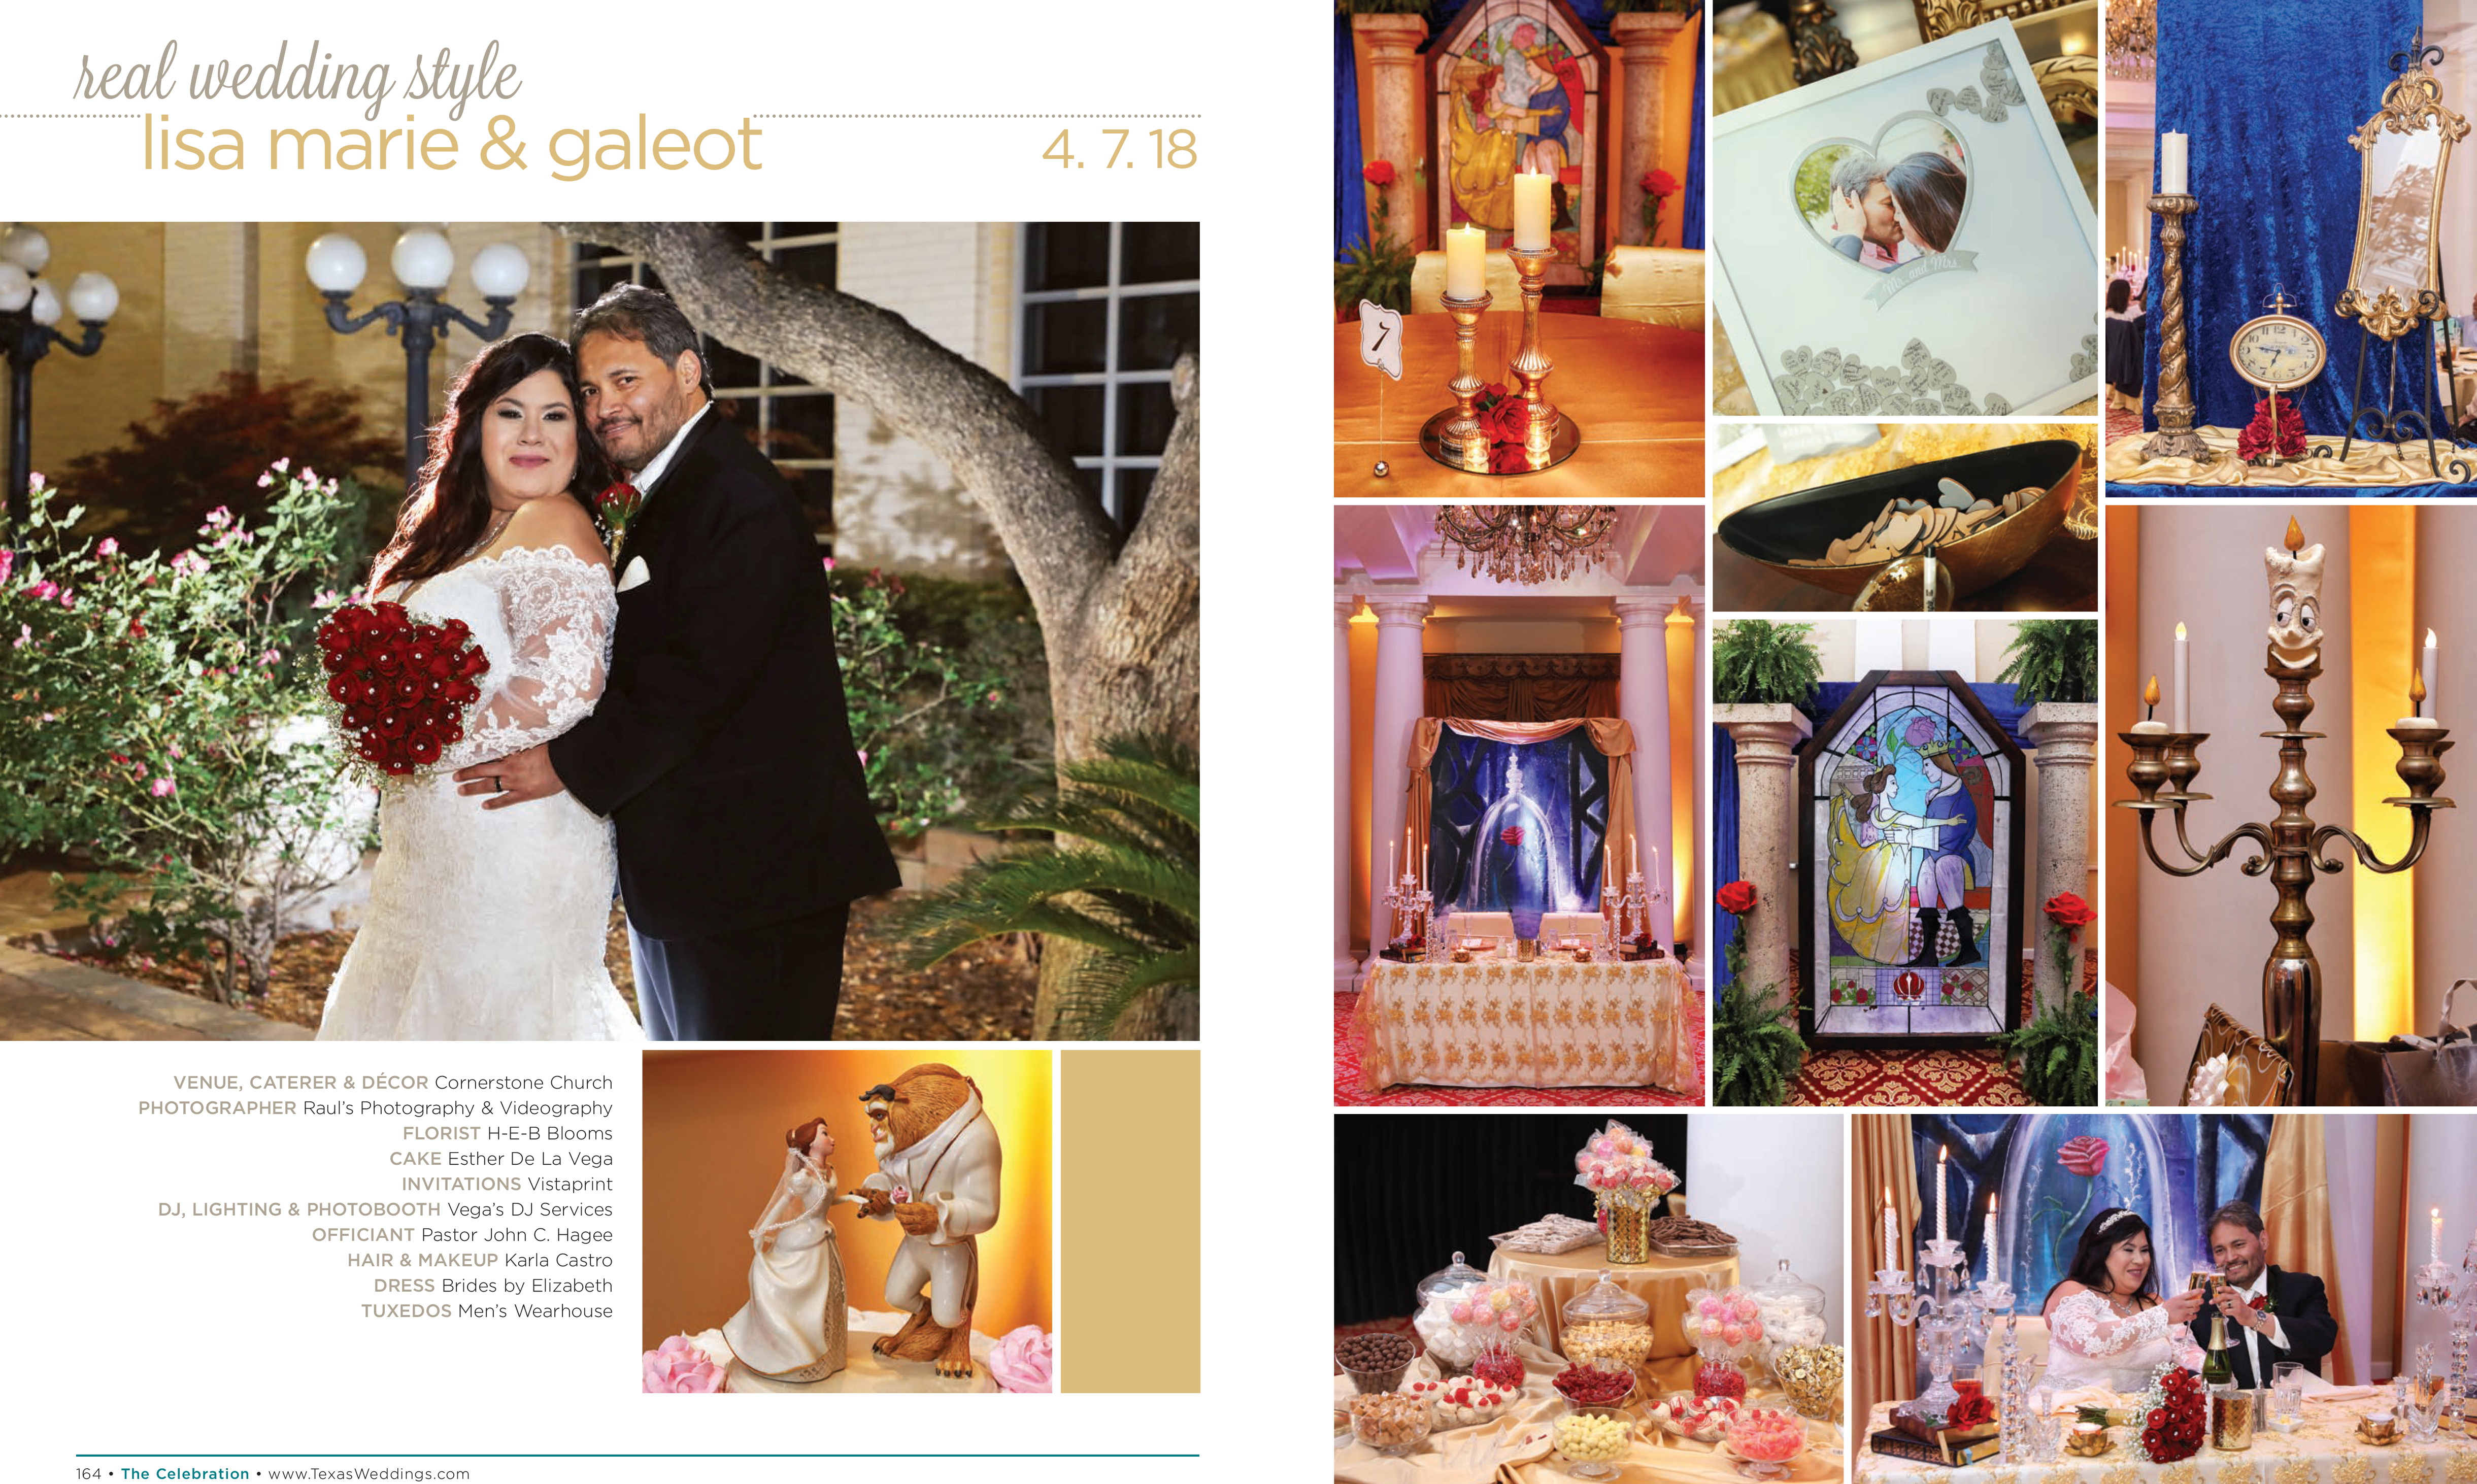 Lisa Marie & Galeot in their Real Wedding Page in the Fall/Winter 2018 Texas Wedding Guide